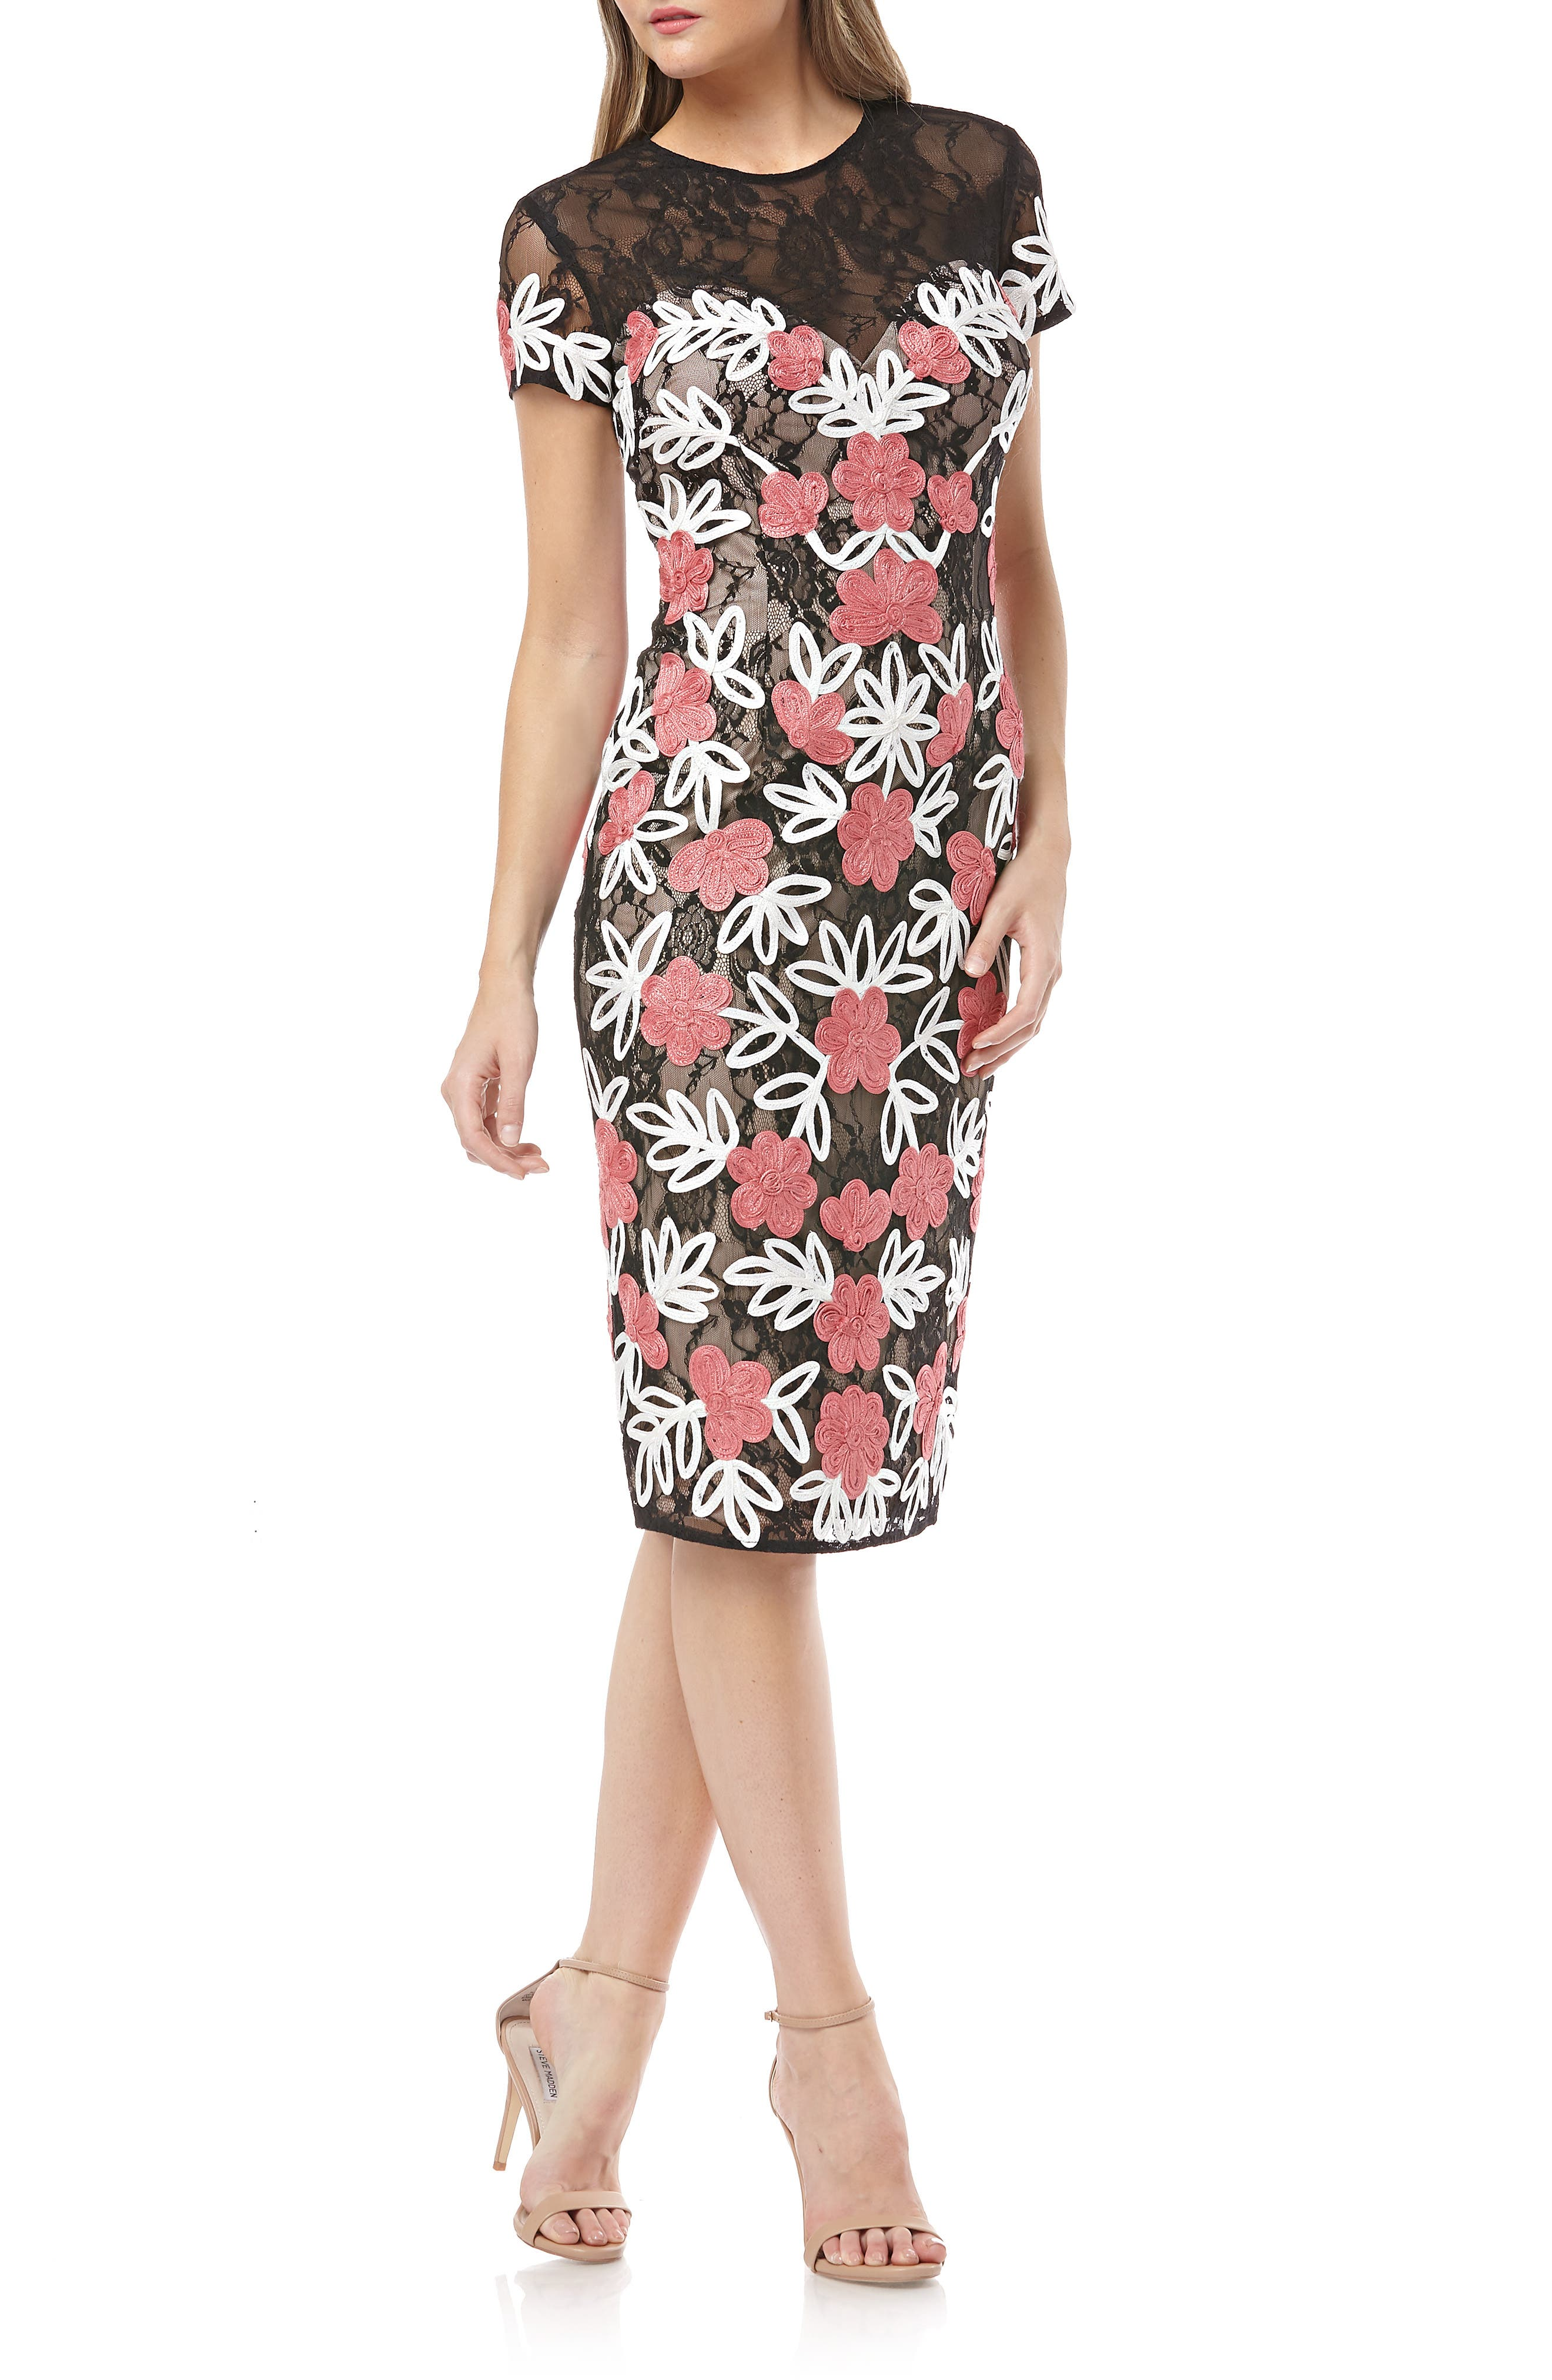 Js Collections Floral Two Tone Embroidered Dress, Black